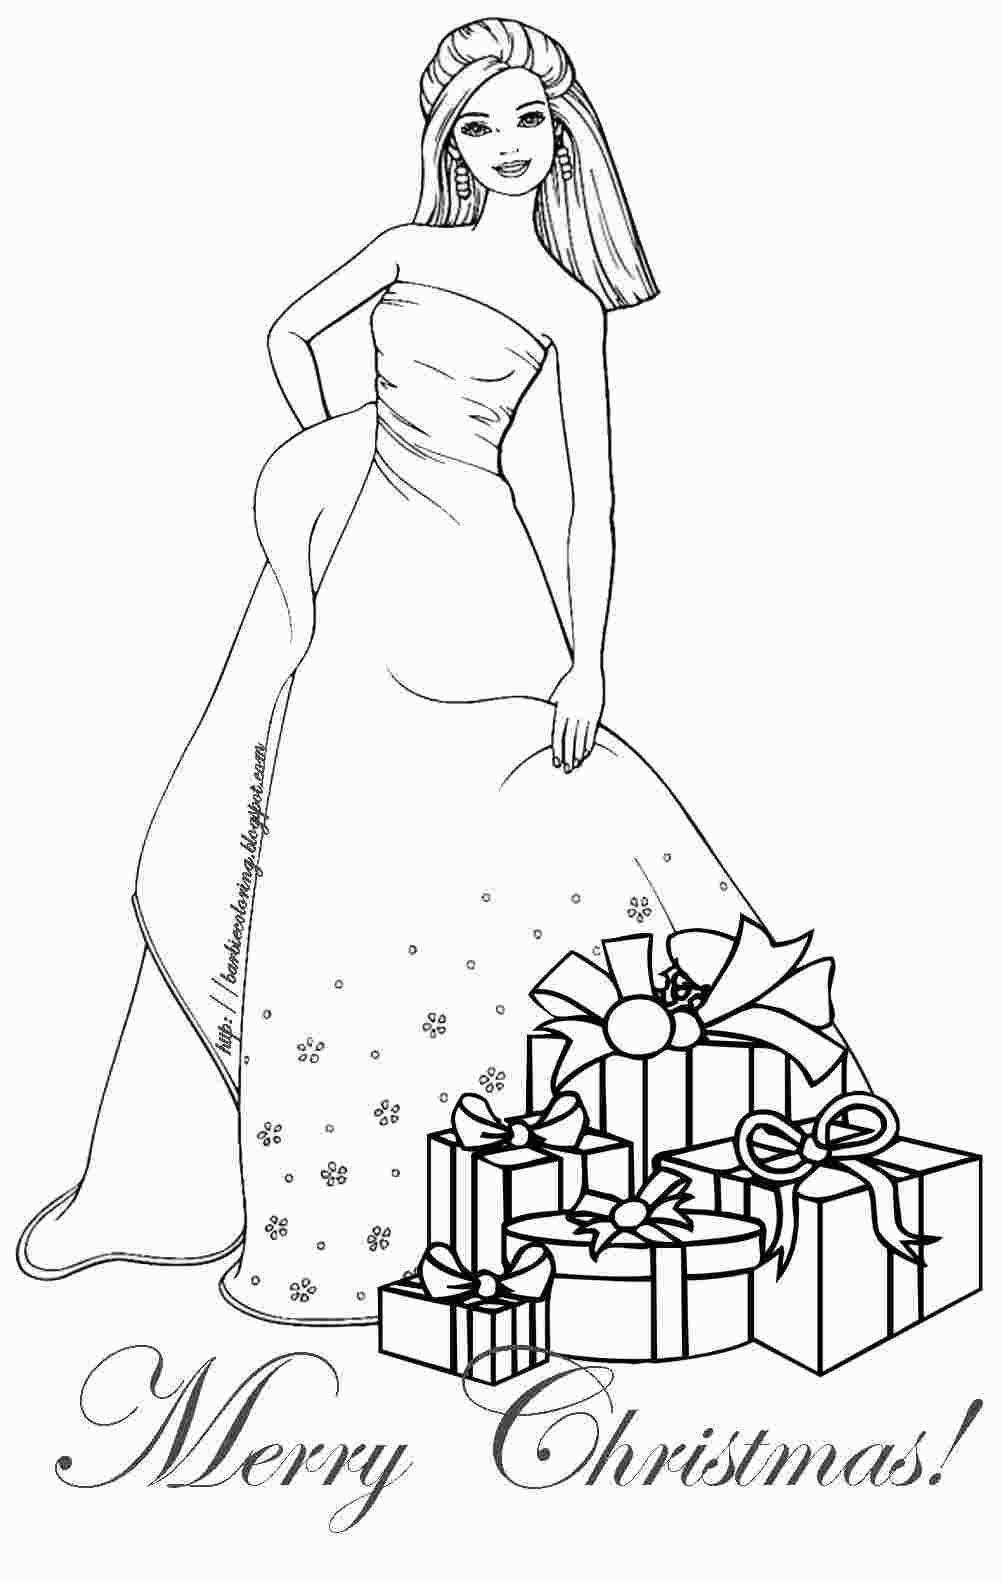 Holiday Barbie Coloring Pages Barbie Coloring Pages Barbie Coloring Cute Coloring Pages [ 1583 x 1001 Pixel ]